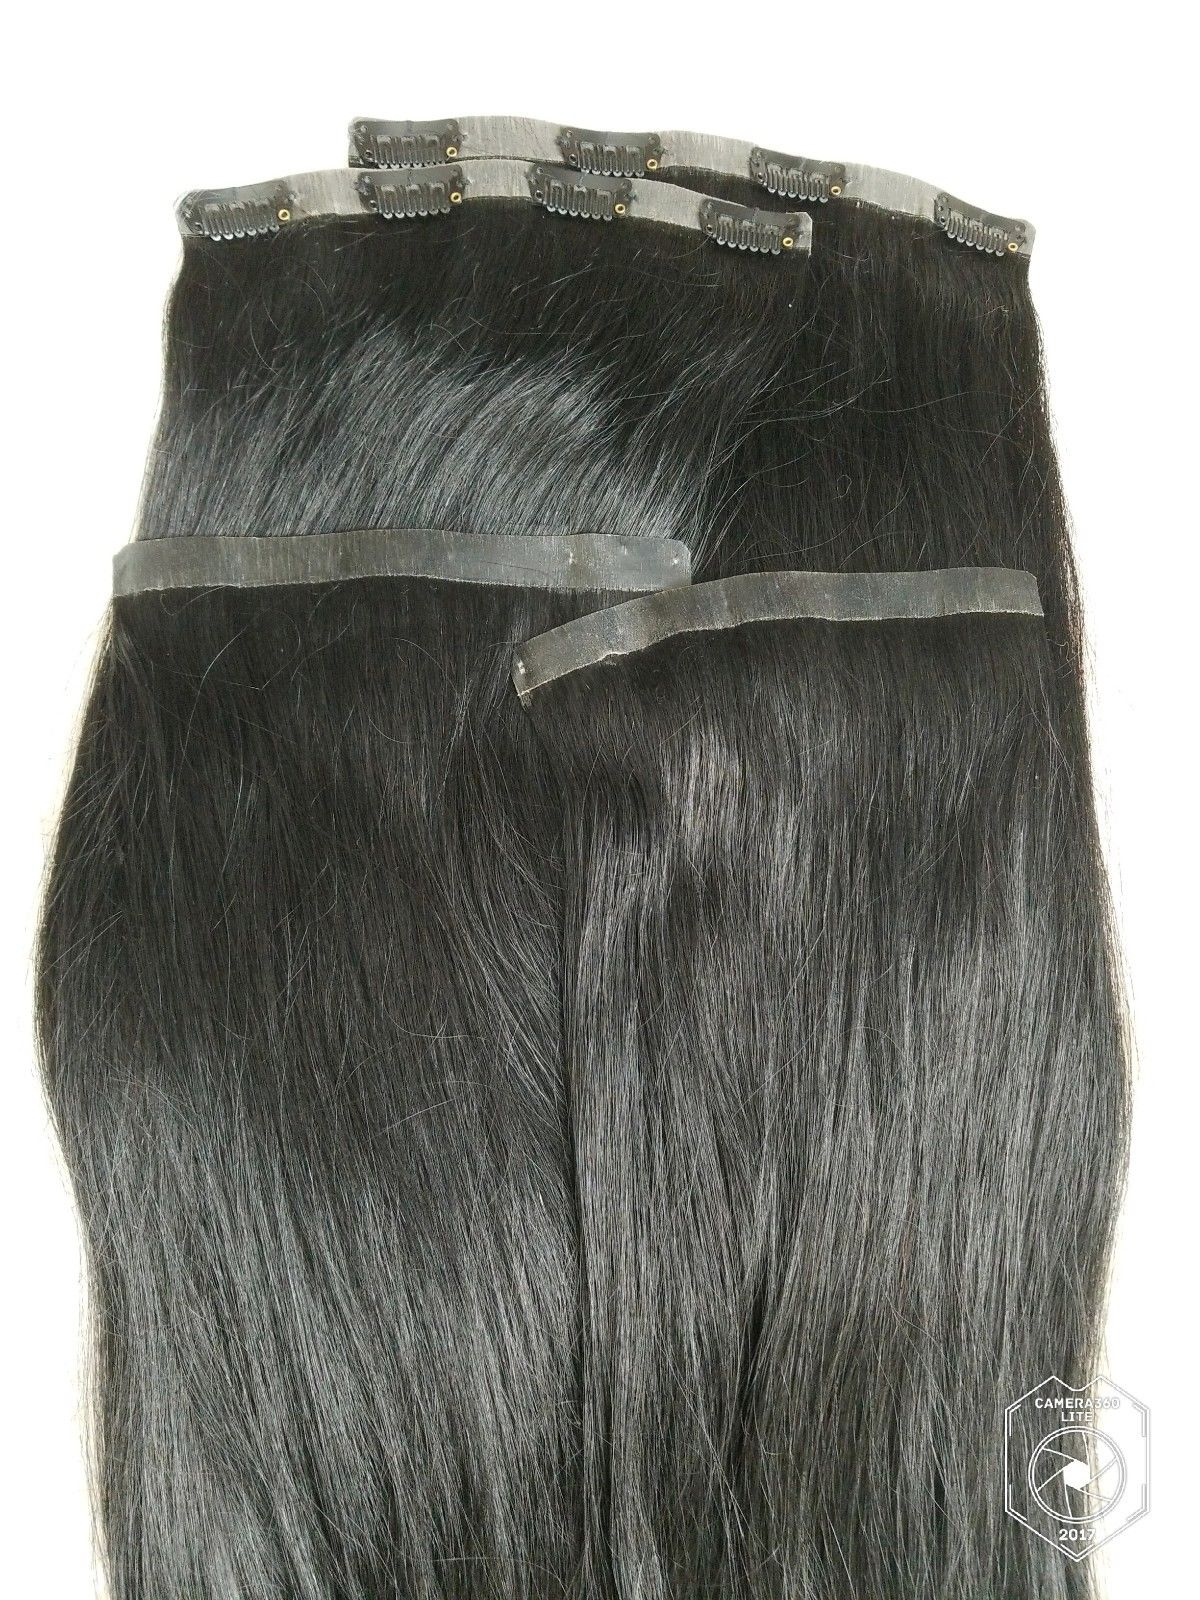 Black Hair Extensions Foxy Locks Image Of Black Hair Regimageco